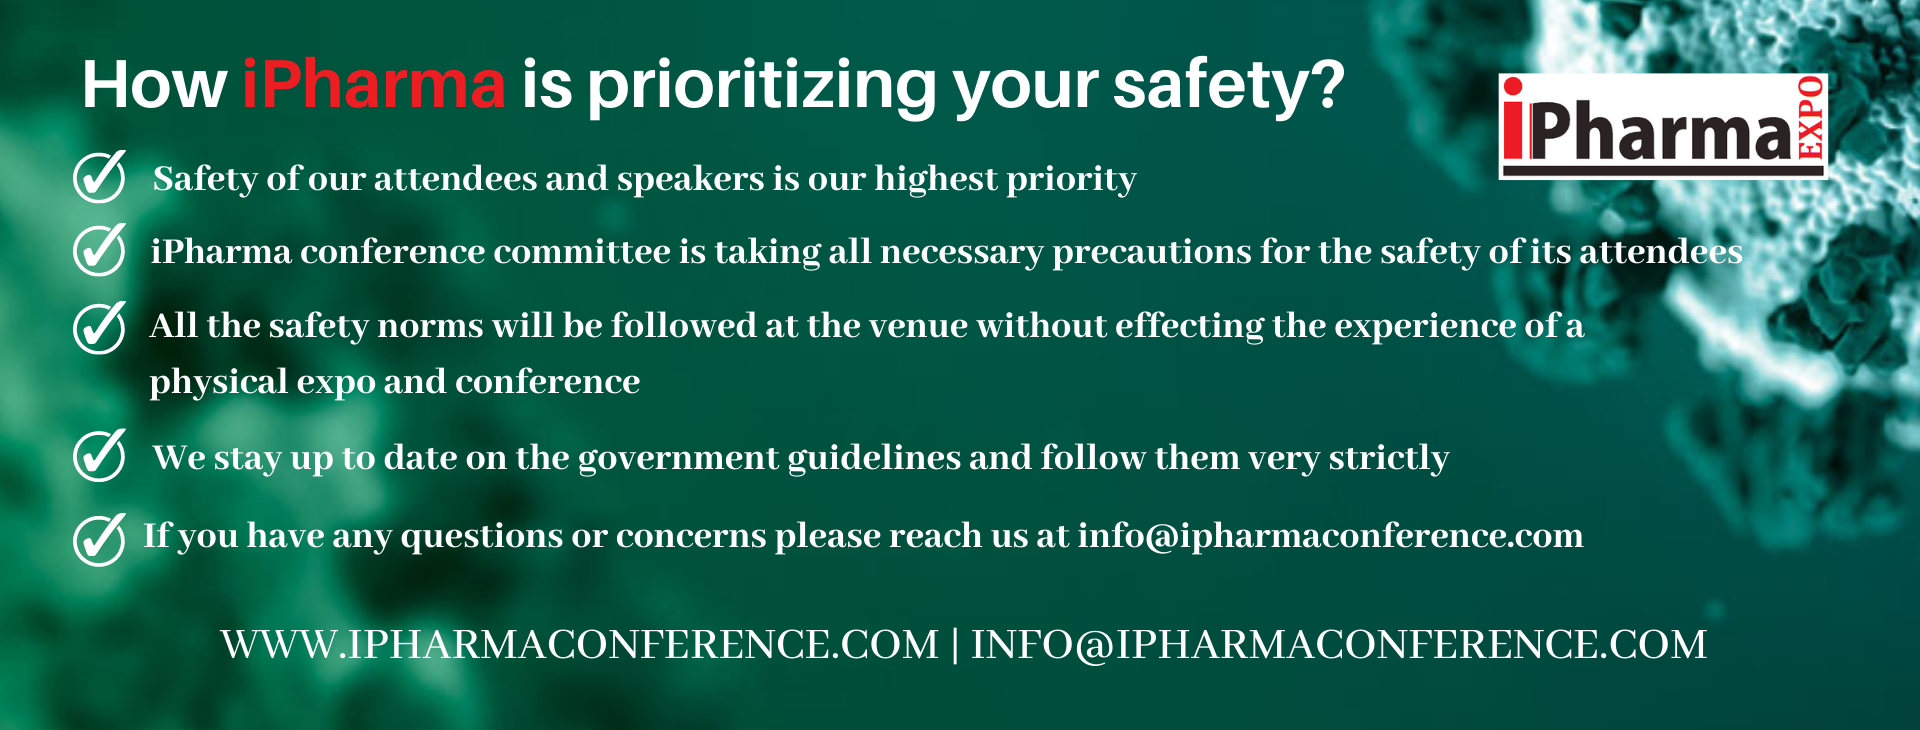 iPharma Expo safety announcement banner